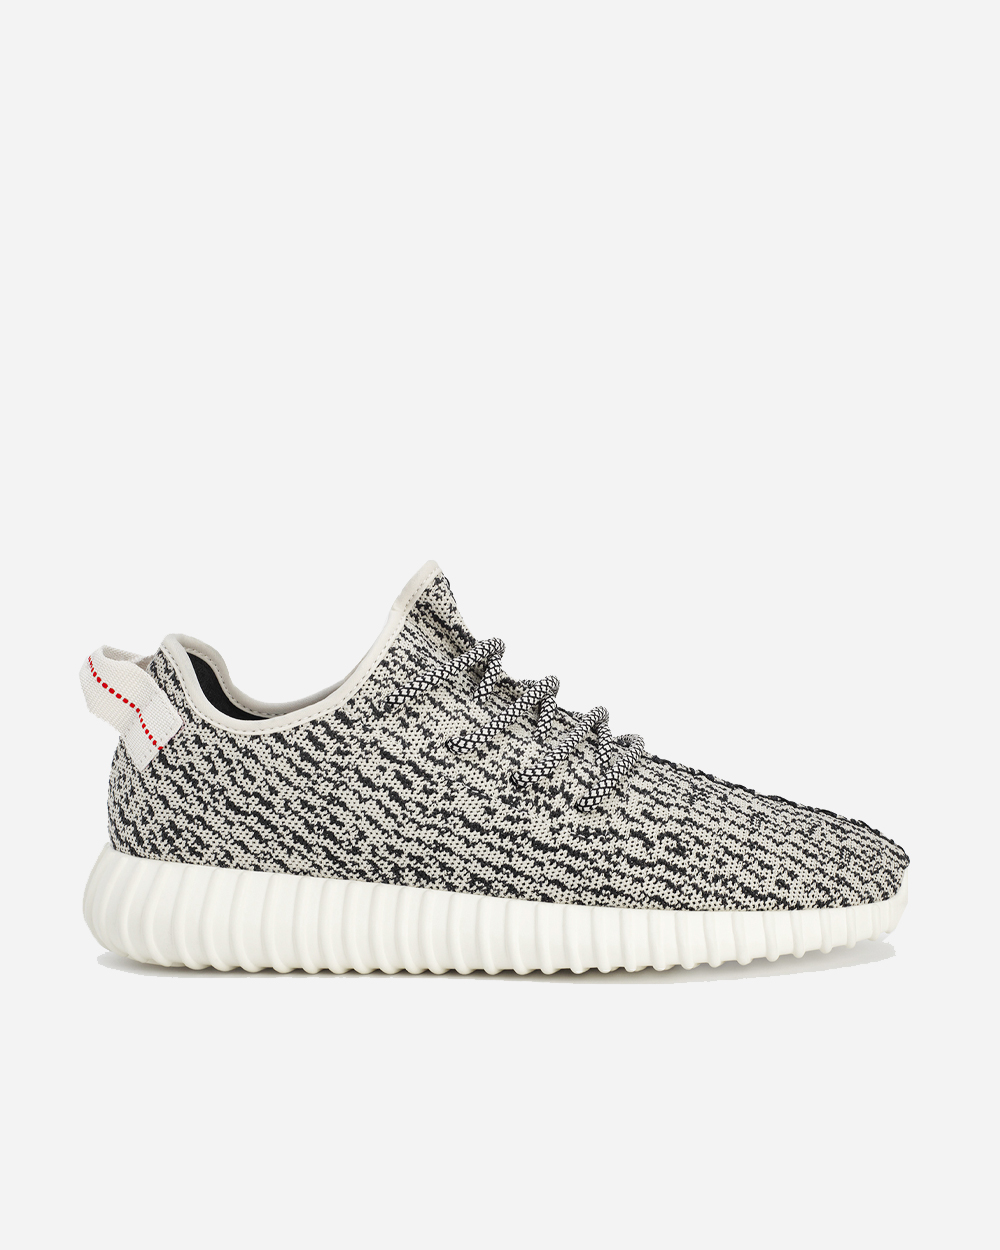 1000x1250 Adidas Originals By Kanye West Yeezy Boost 350 Turtlelugracore